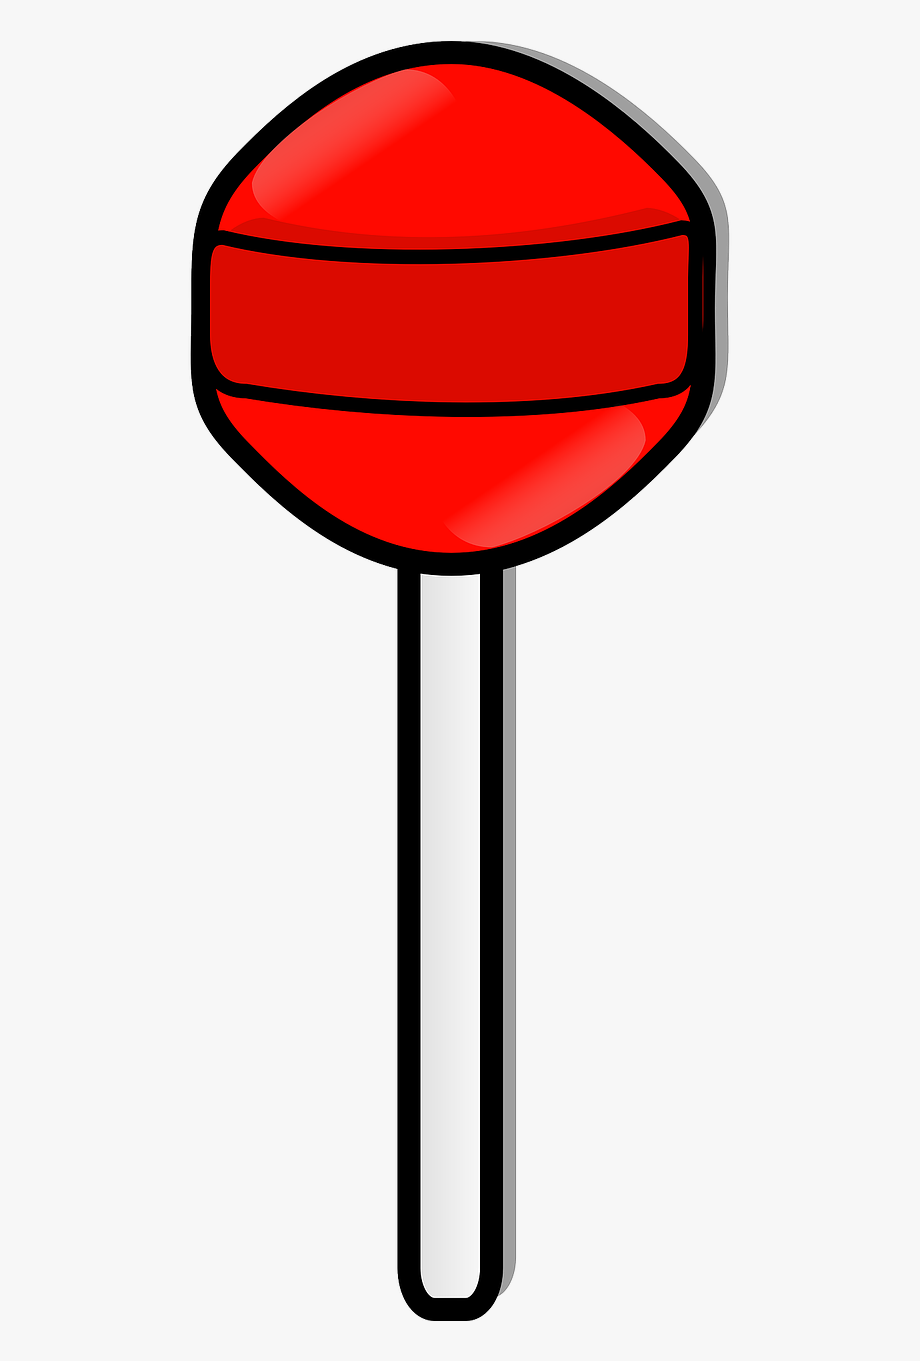 Lollipop Free To Use Cliparts.